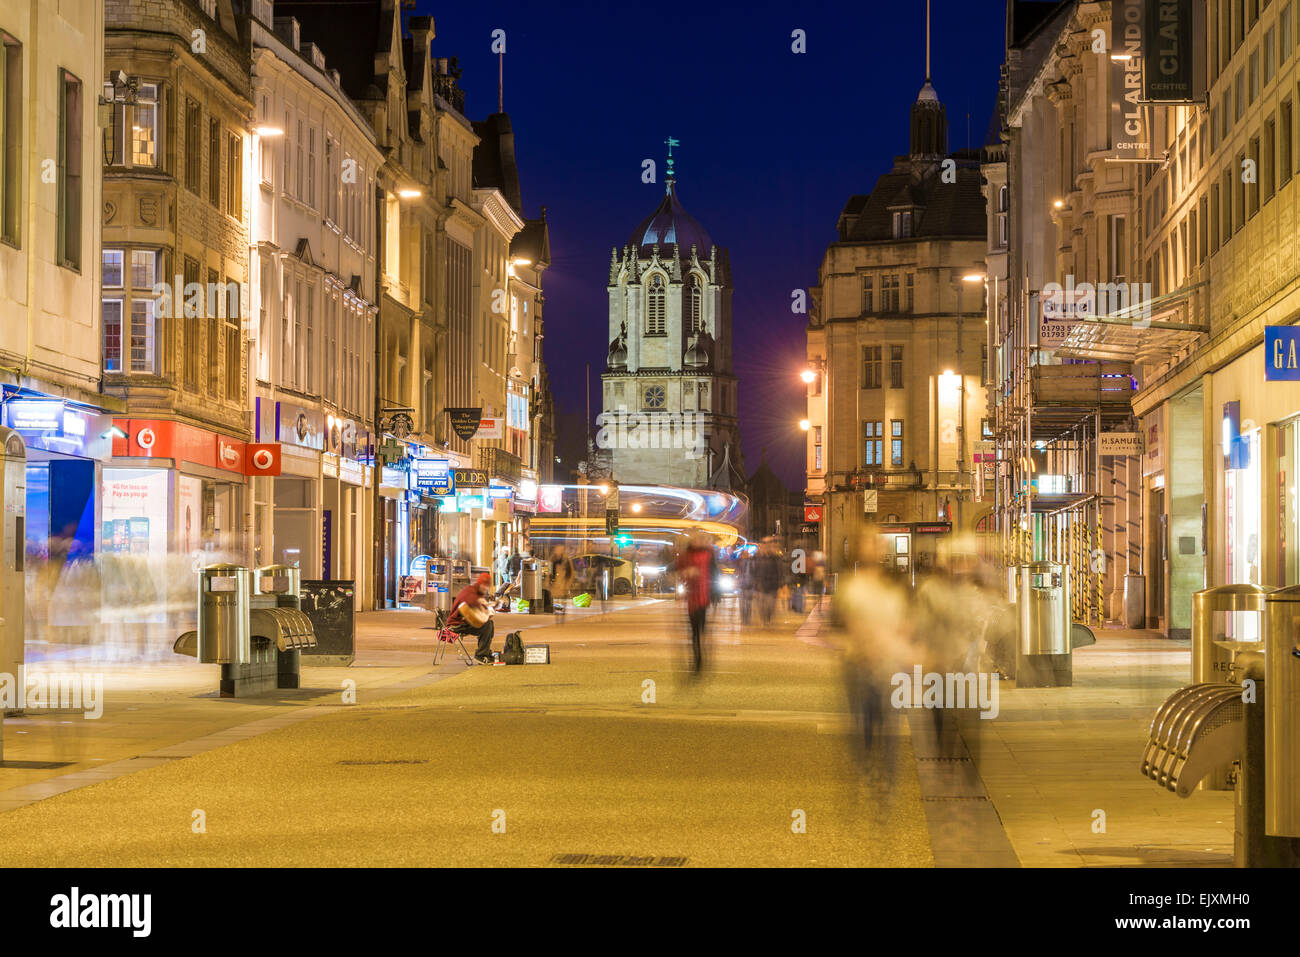 Tom Tower of Christ Church College, Oxford University, viewed down Cornmarket Street, one of the main shopping streets - Stock Image